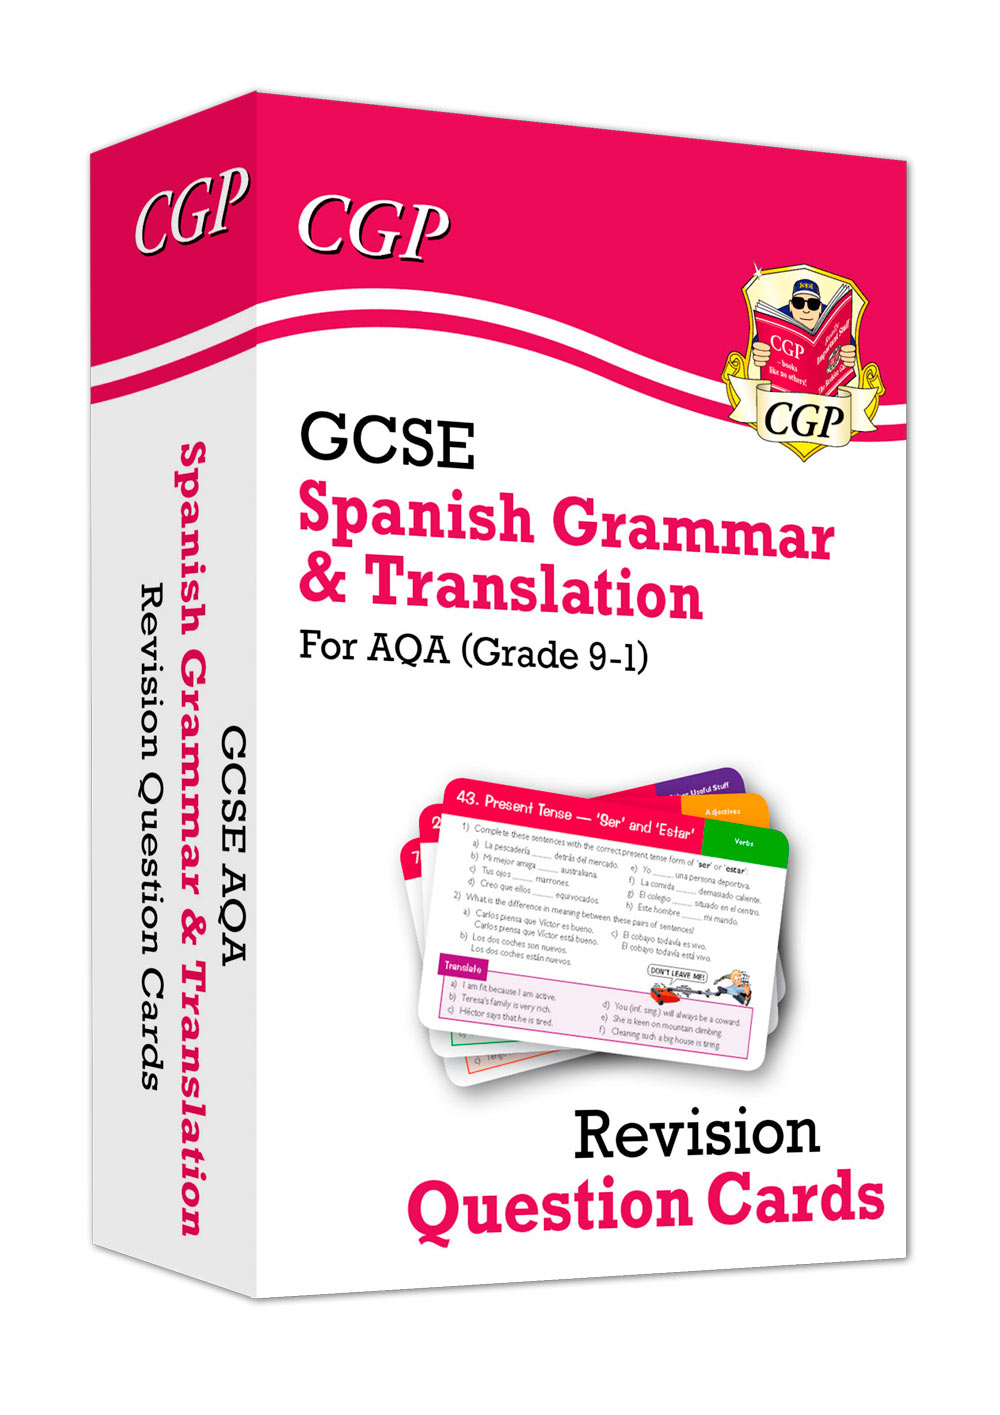 SPATF41 - New Grade 9-1 GCSE AQA Spanish: Grammar & Translation Revision Question Cards